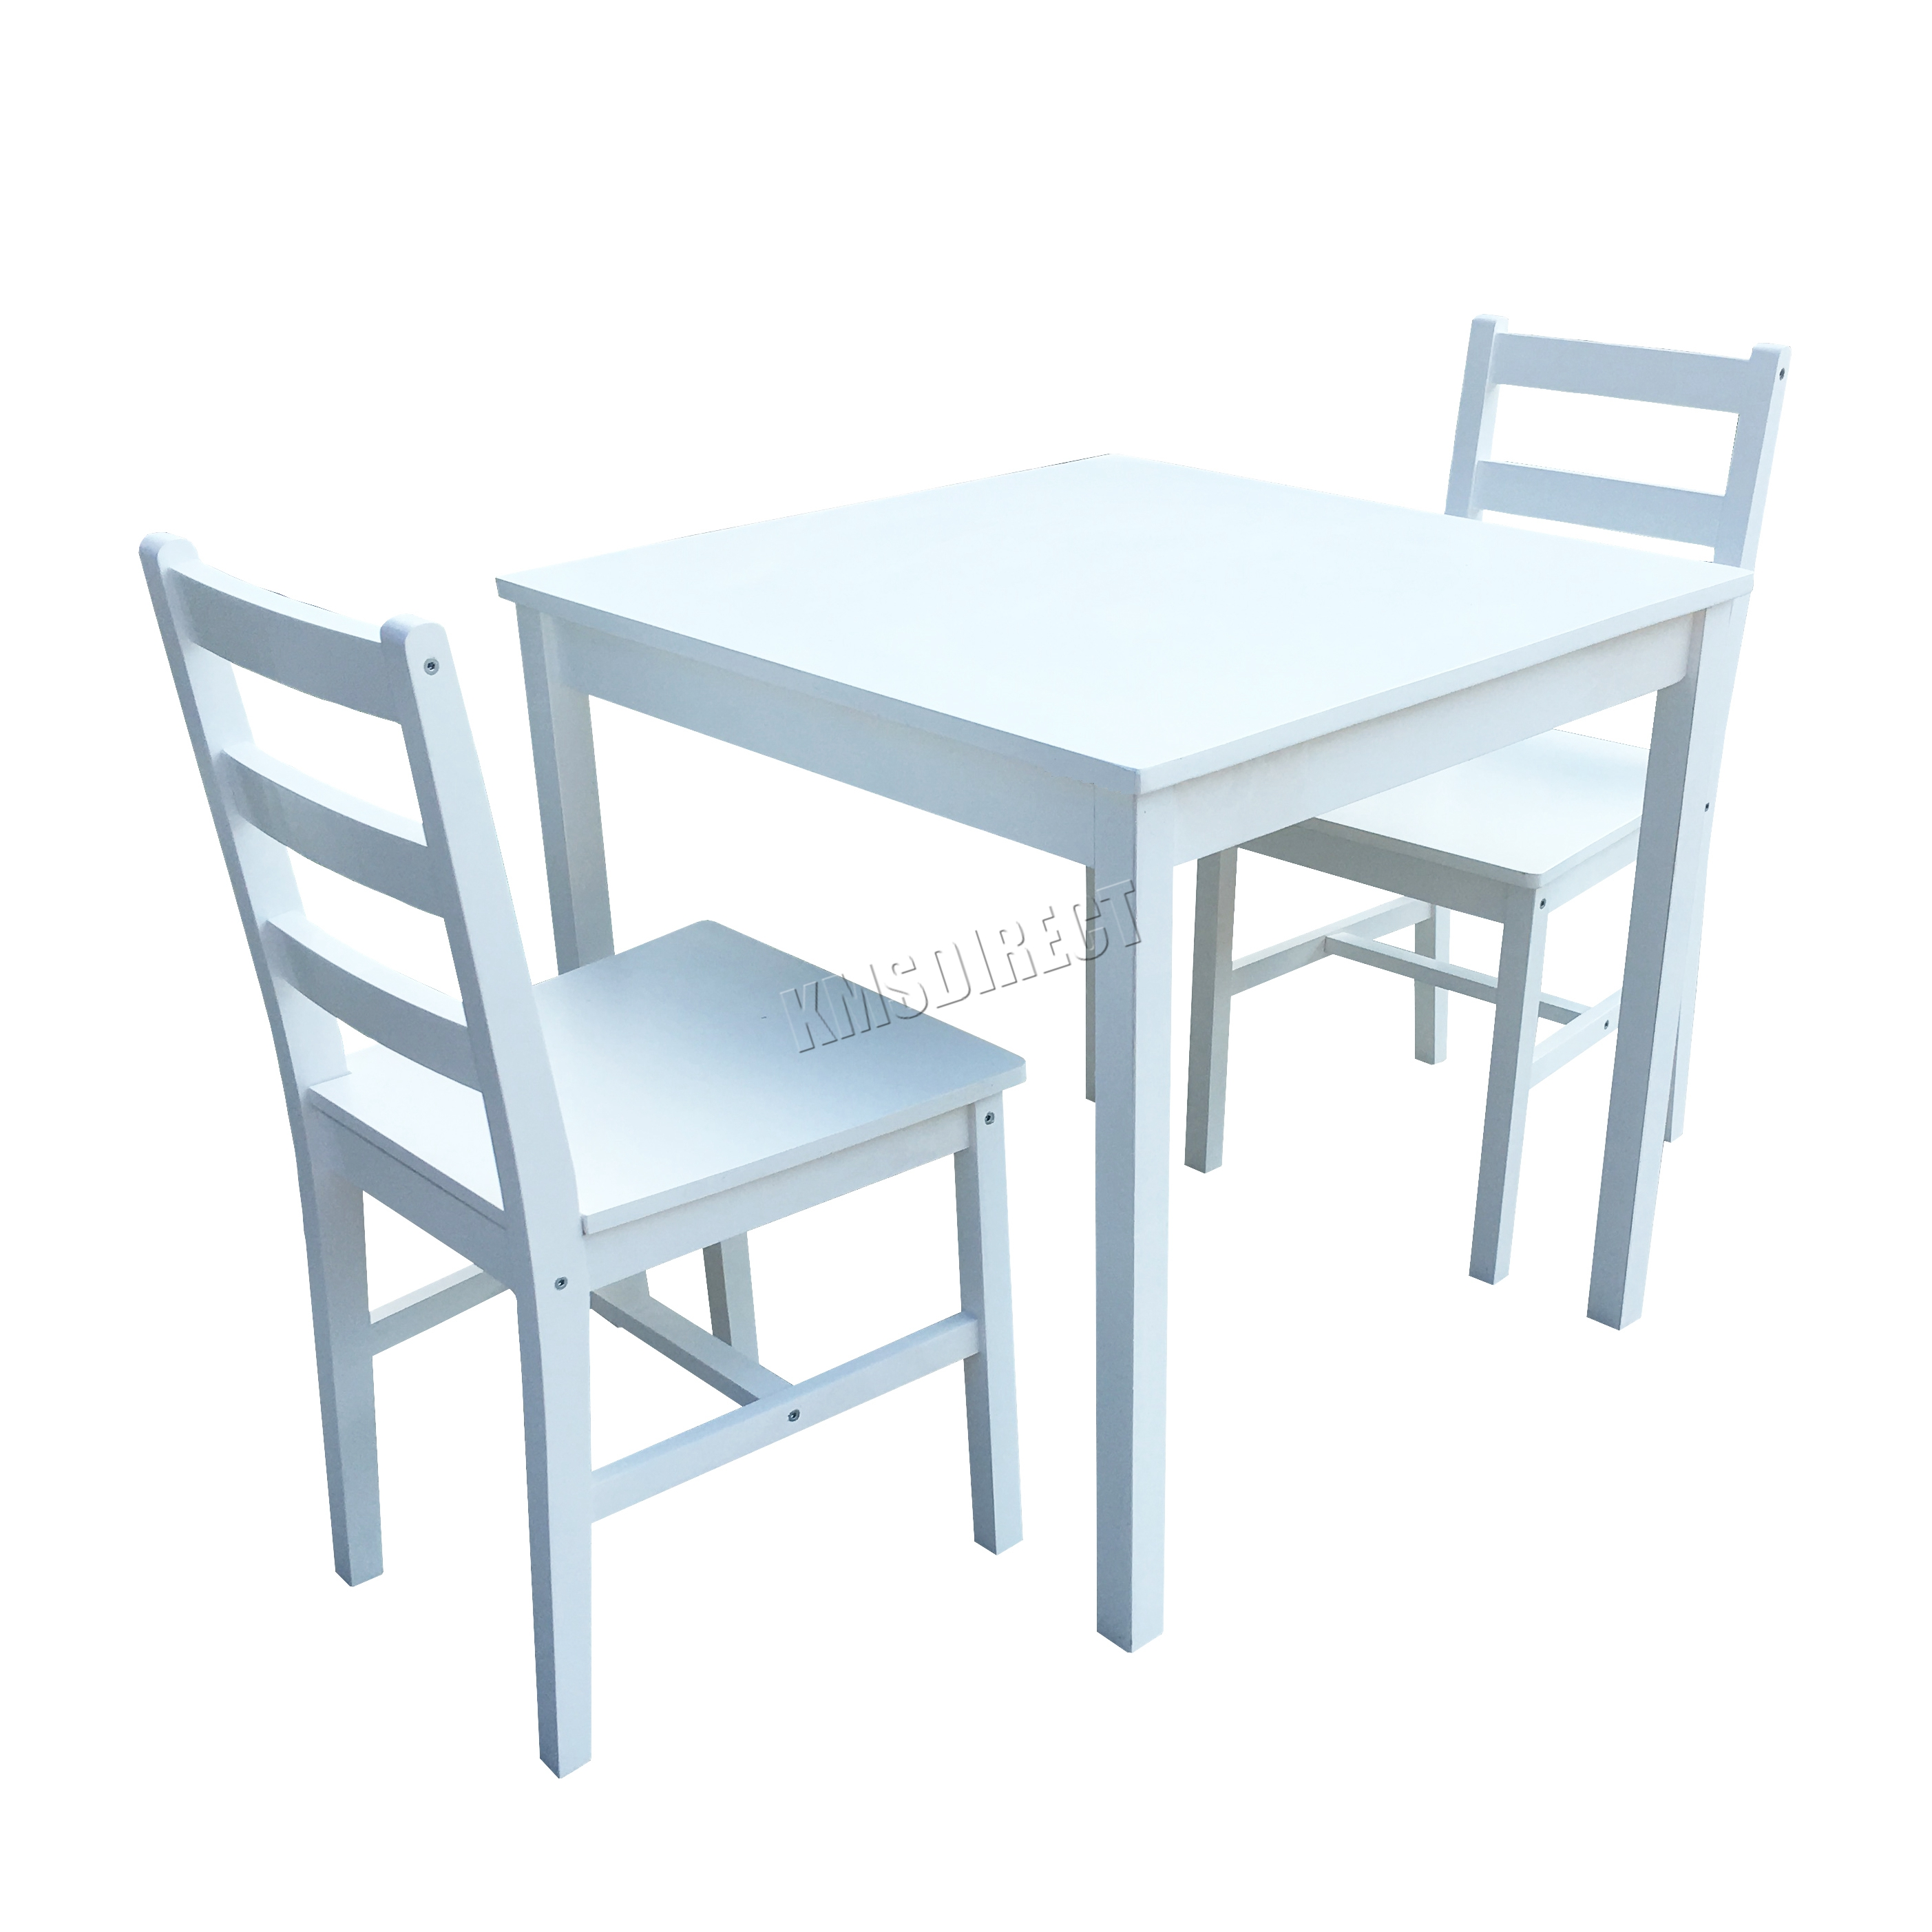 pine kitchen chairs chair swing jhula westwood solid wood dining table with 2 set